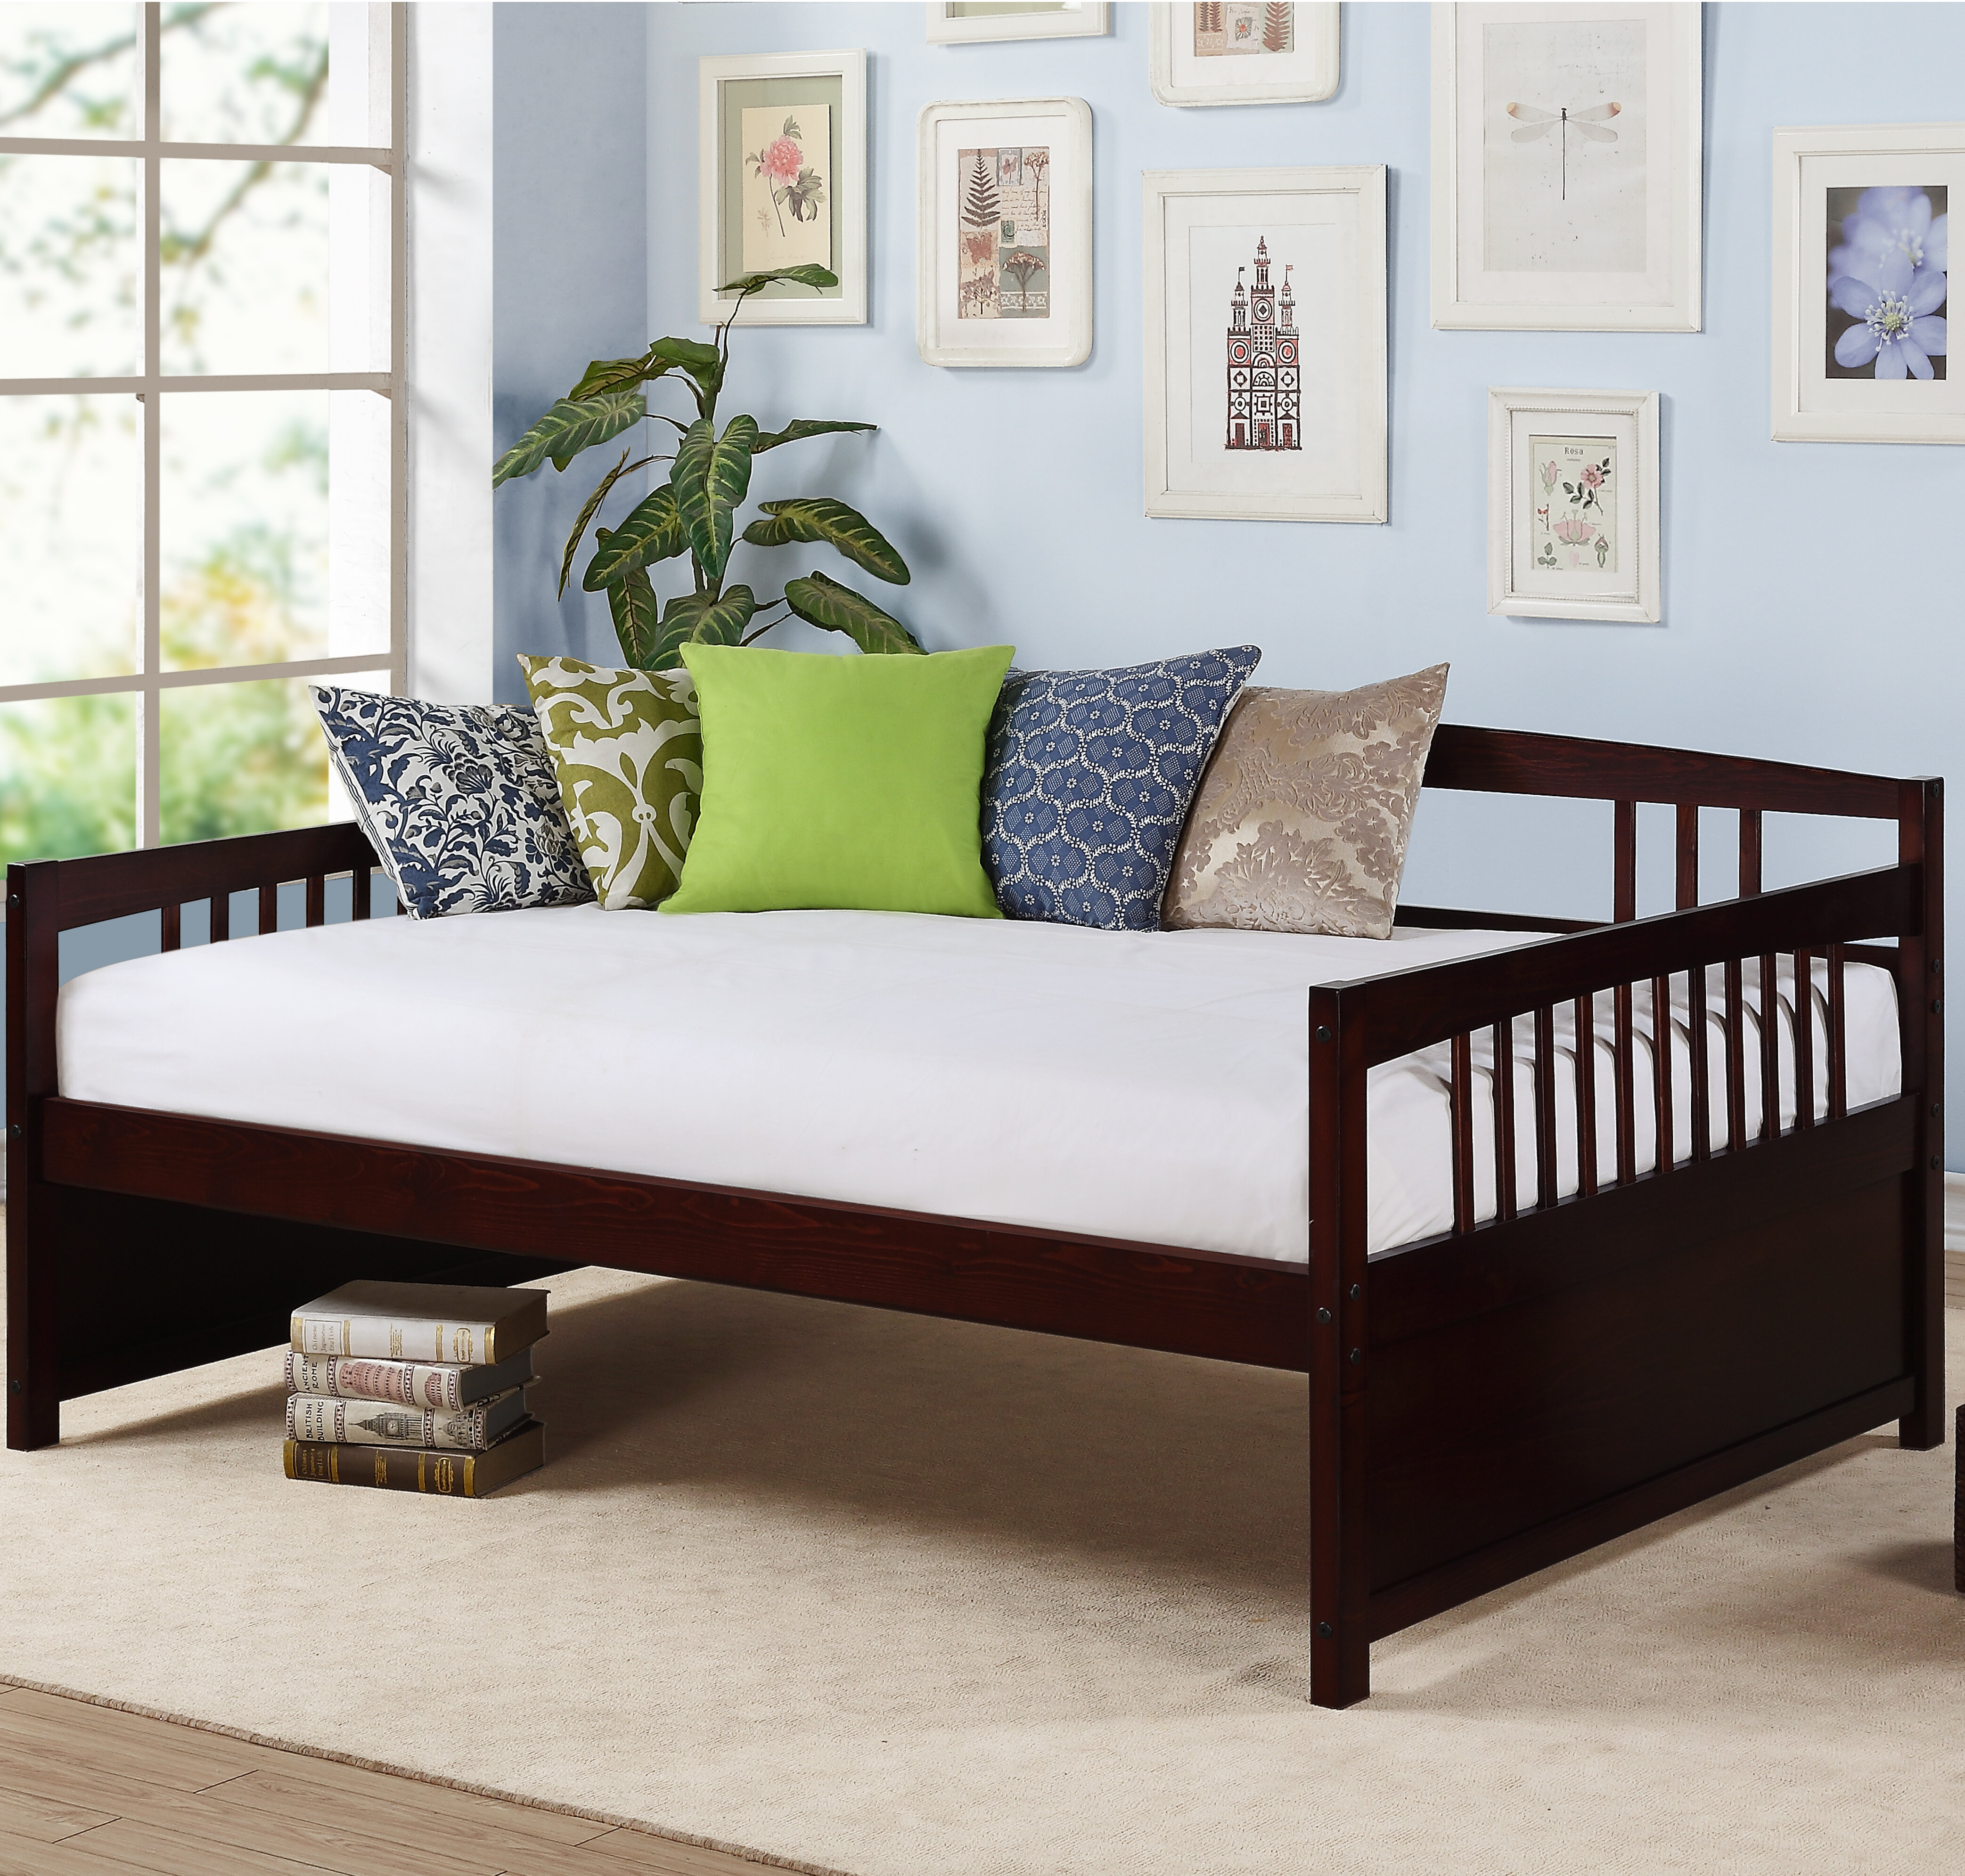 white plans sectional diy cushions free crib with ana mattress couch kids bed